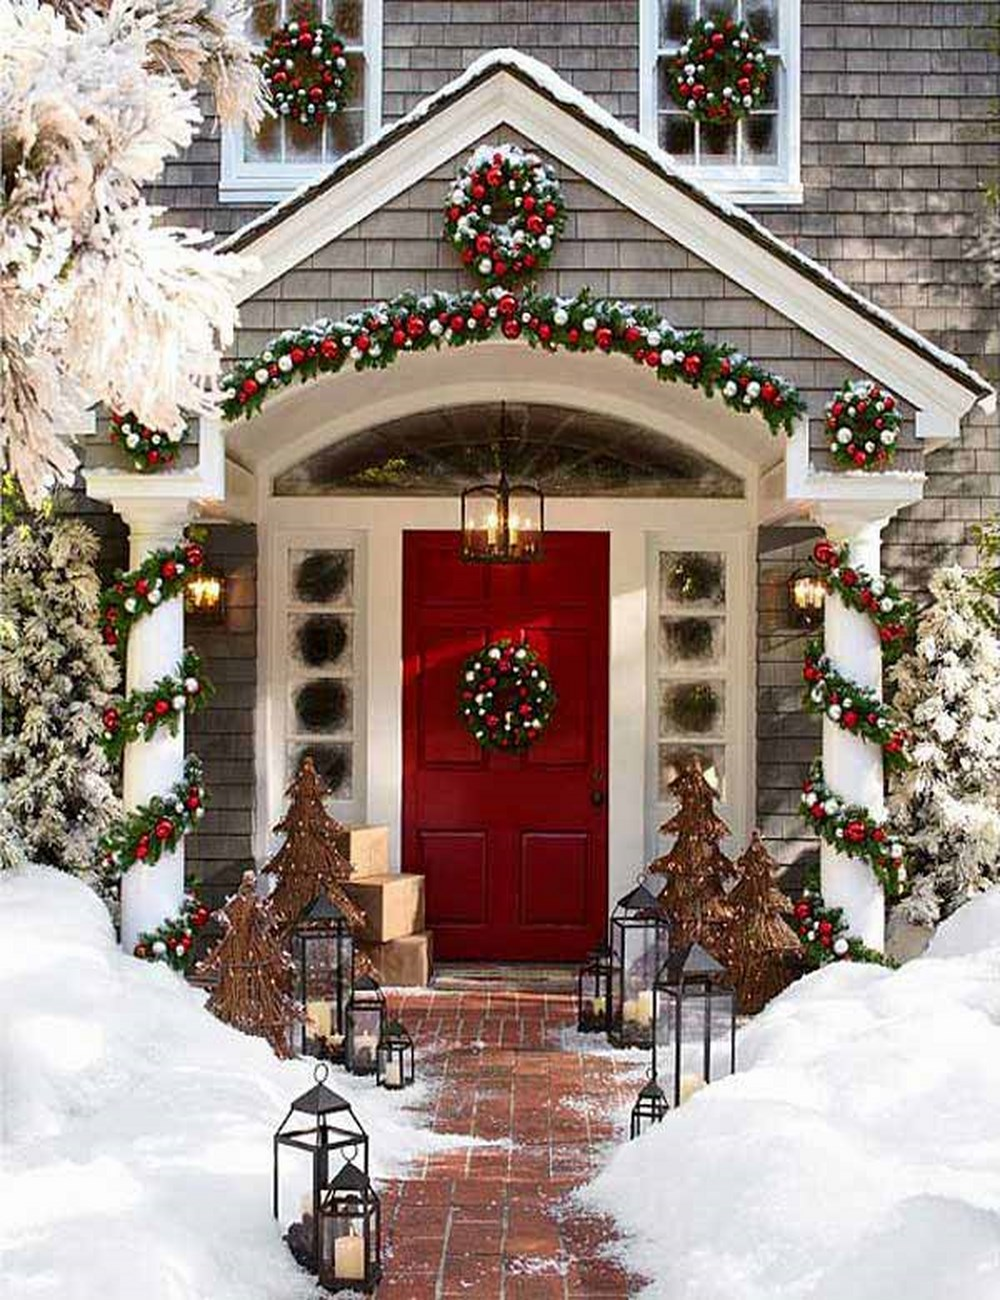 24 festive ideas for outdoor christmas decorations - Where To Find Outdoor Christmas Decorations